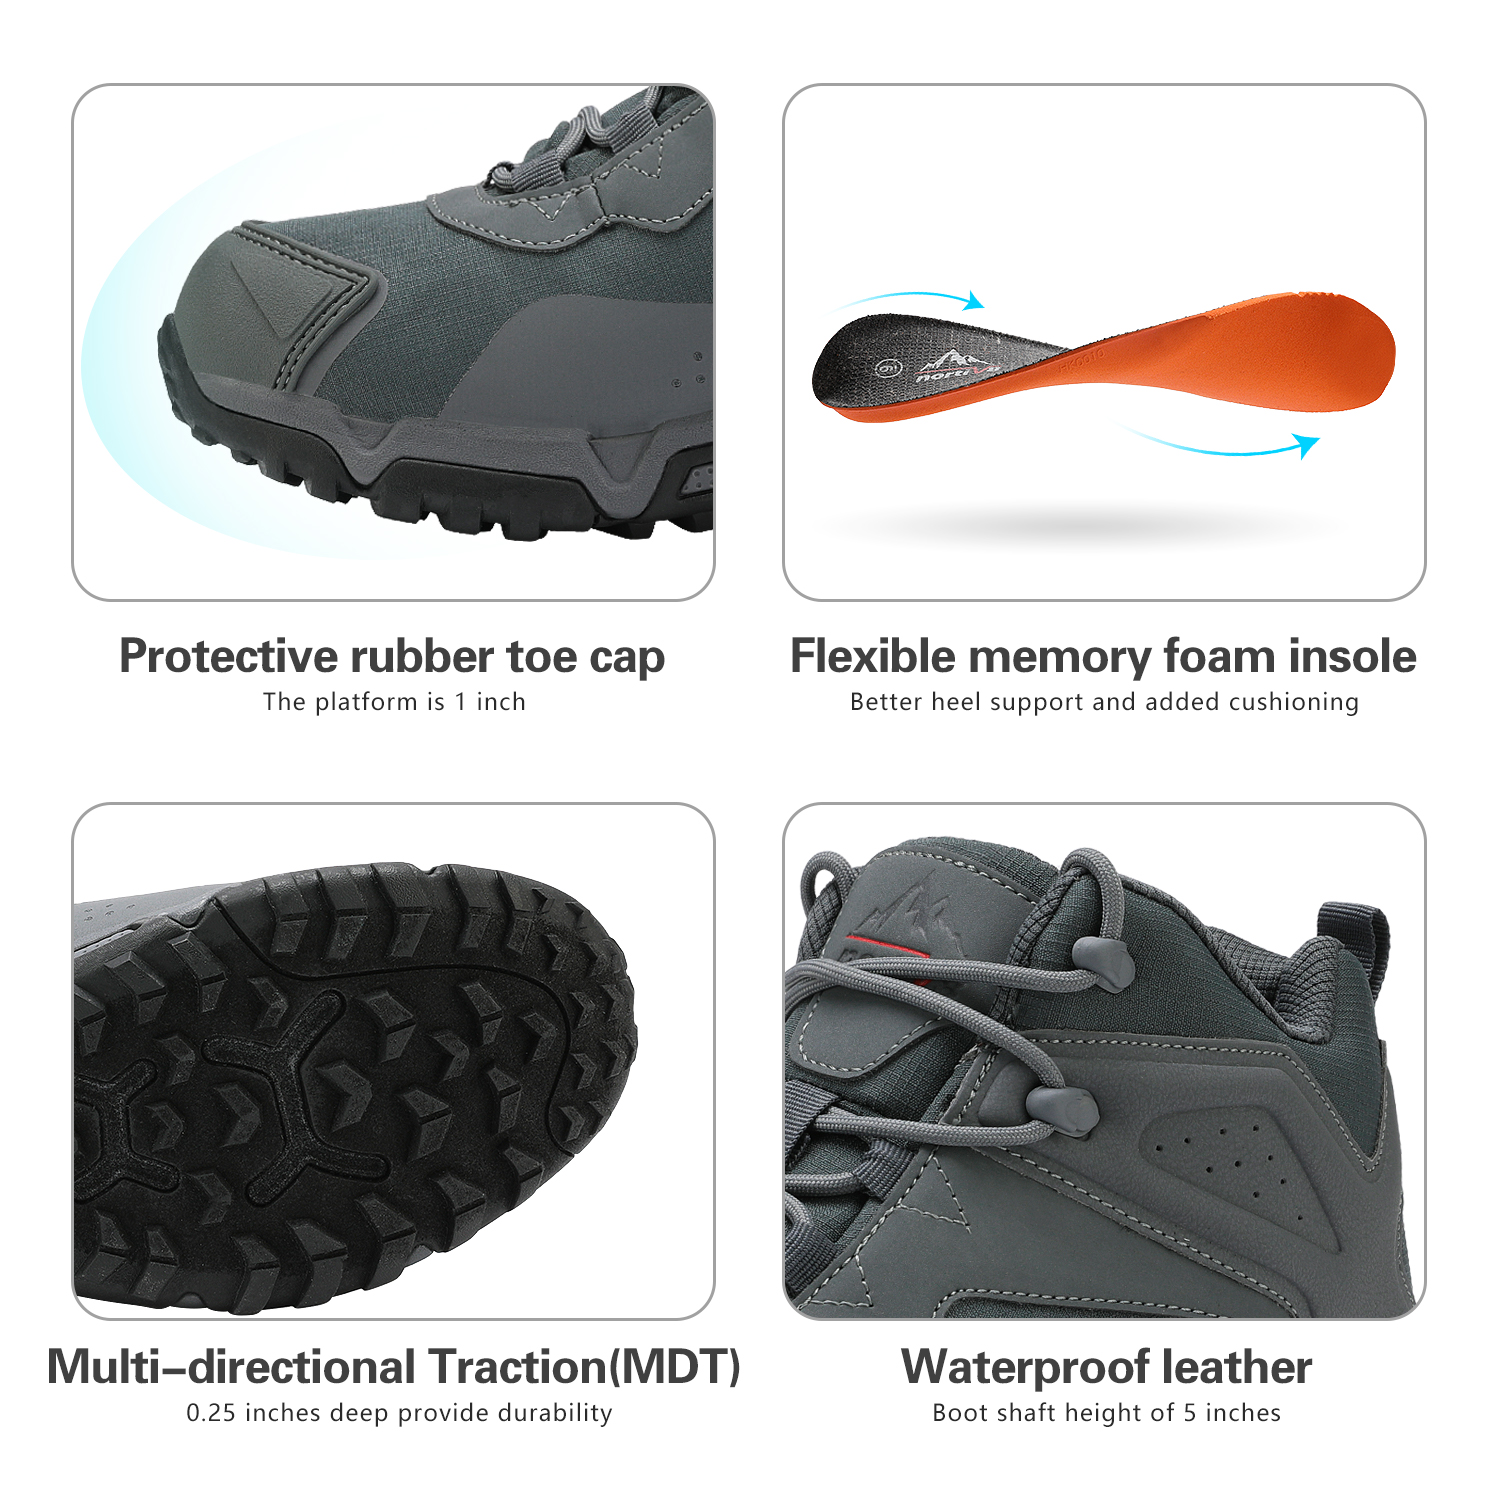 NORTIV-8-Men-039-s-Ankle-Waterproof-Hiking-Boots-Lightweight-Backpacking-Work-Shoes thumbnail 16